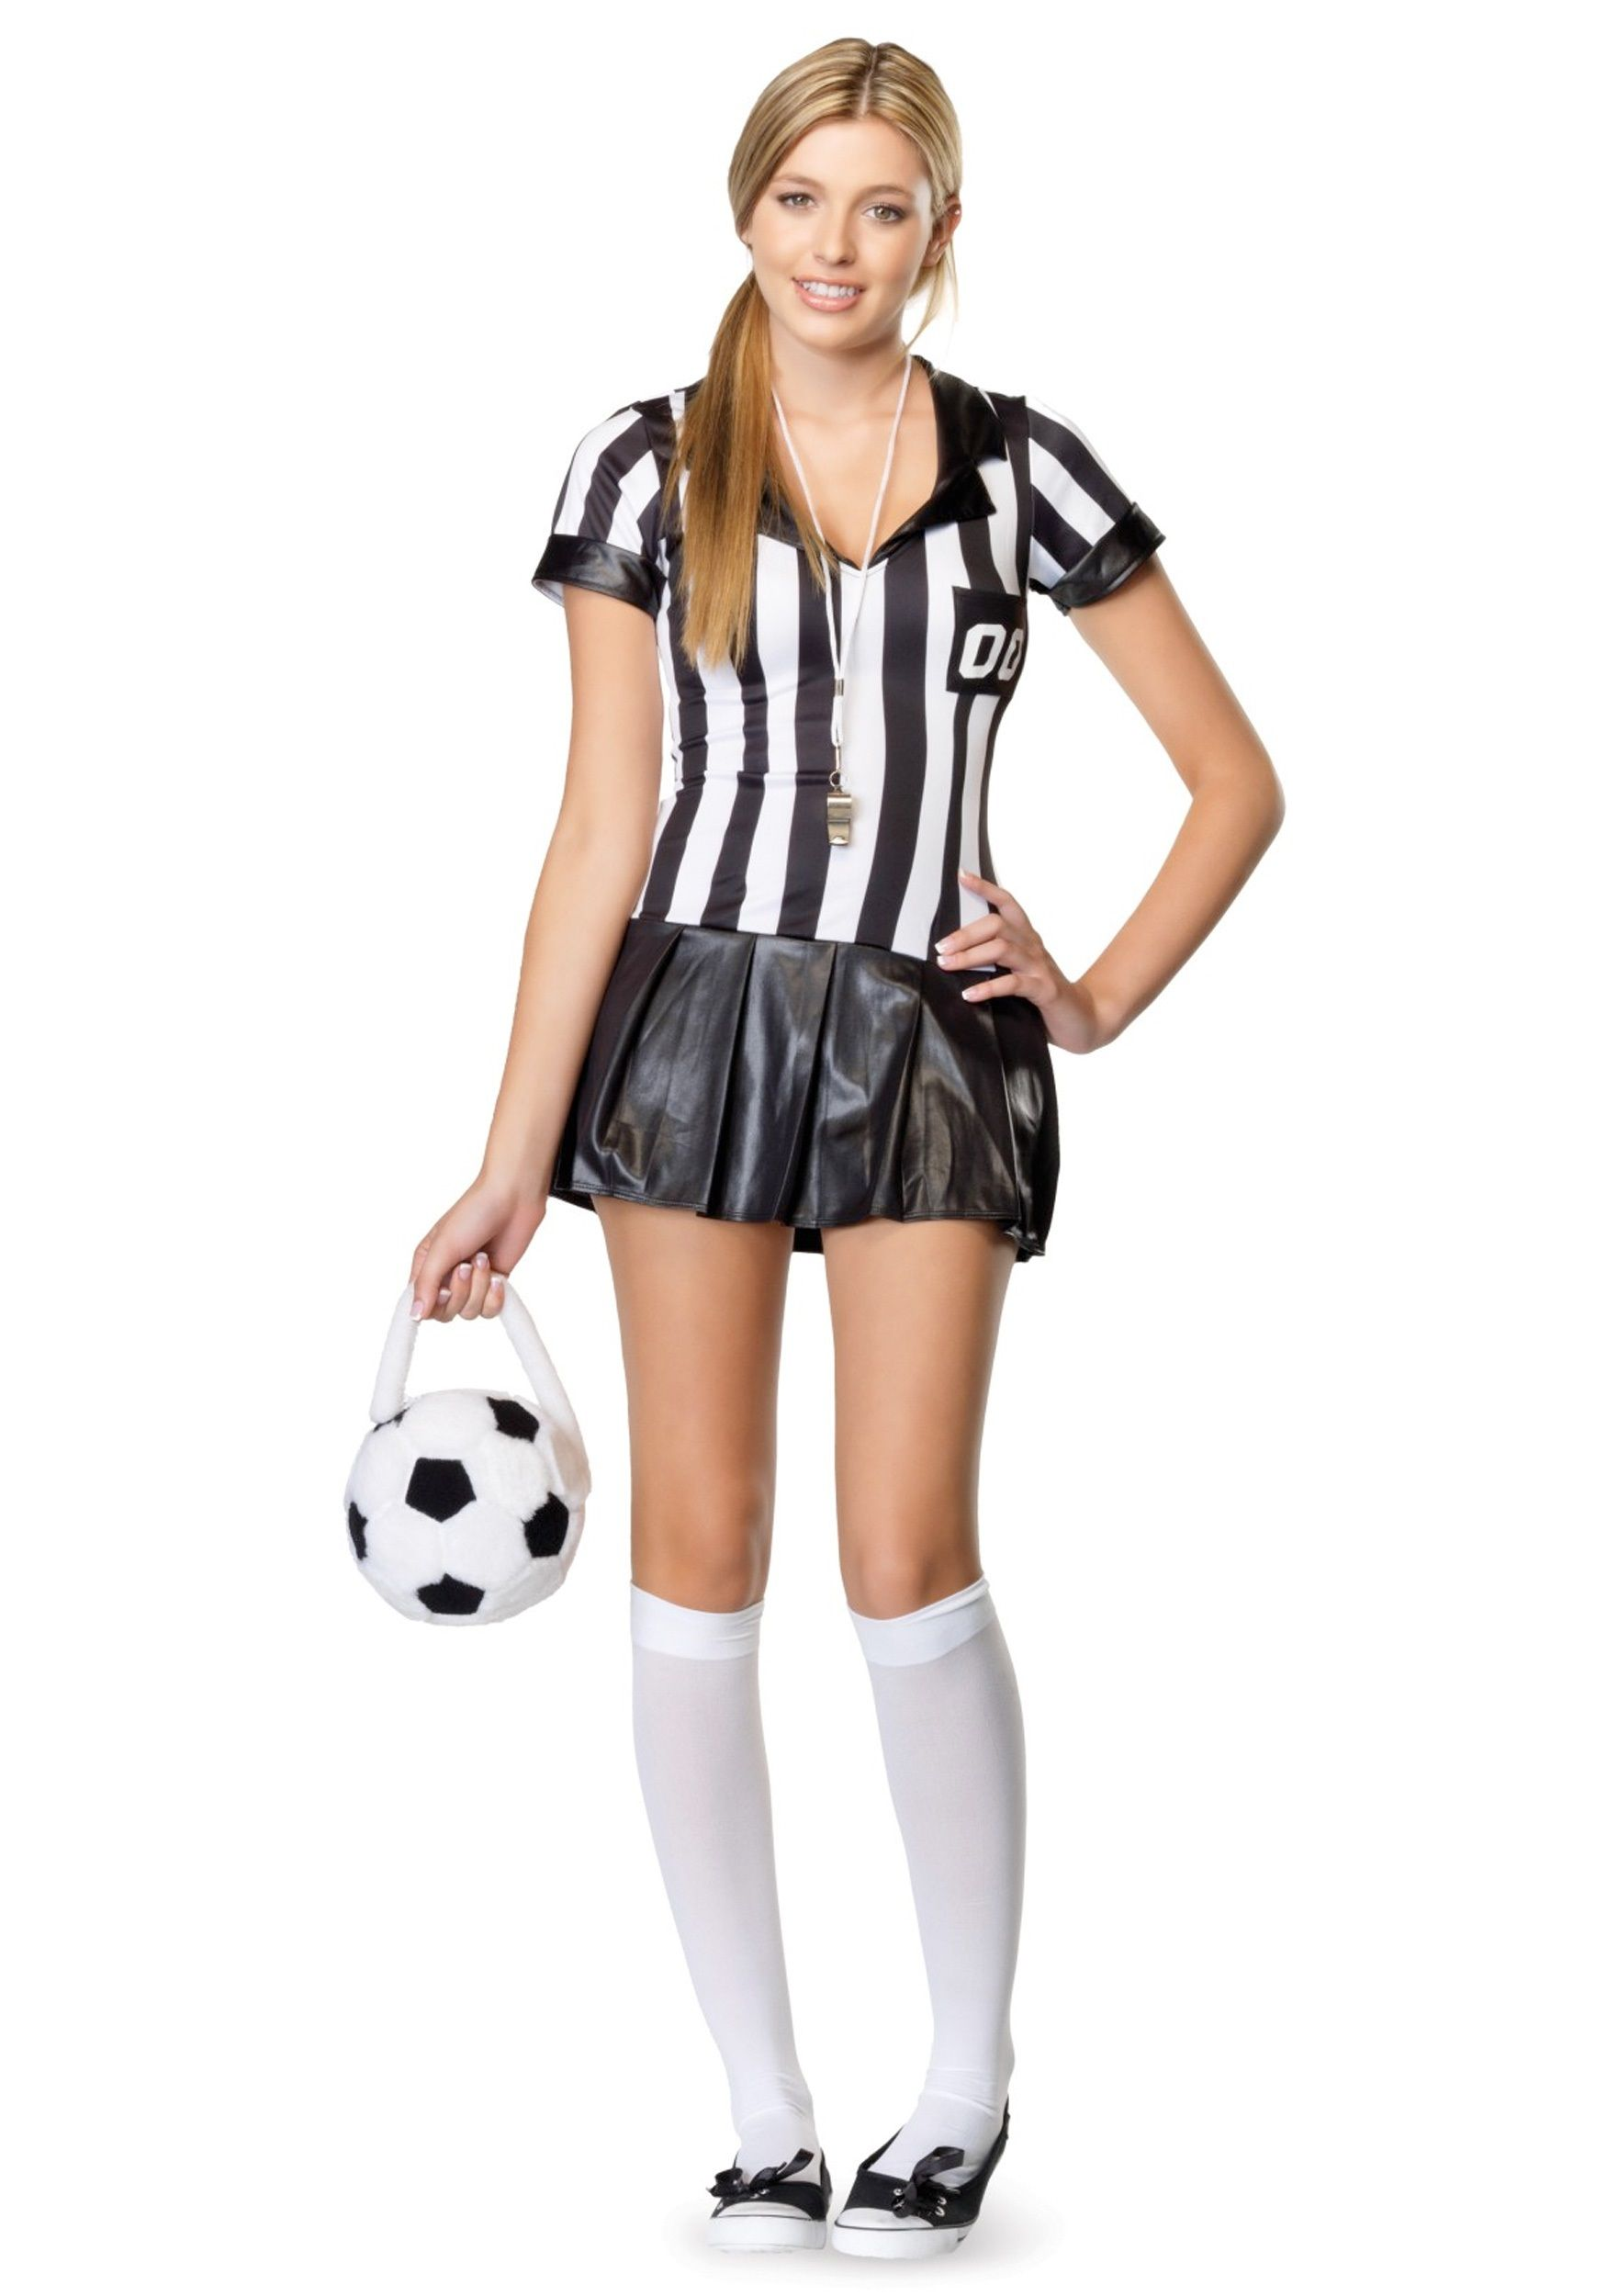 cute+teen+costumes | Home Costume Ideas Sports Costumes Referee Costumes Girls Teen Referee .  sc 1 st  Pinterest & cute+teen+costumes | Home Costume Ideas Sports Costumes Referee ...